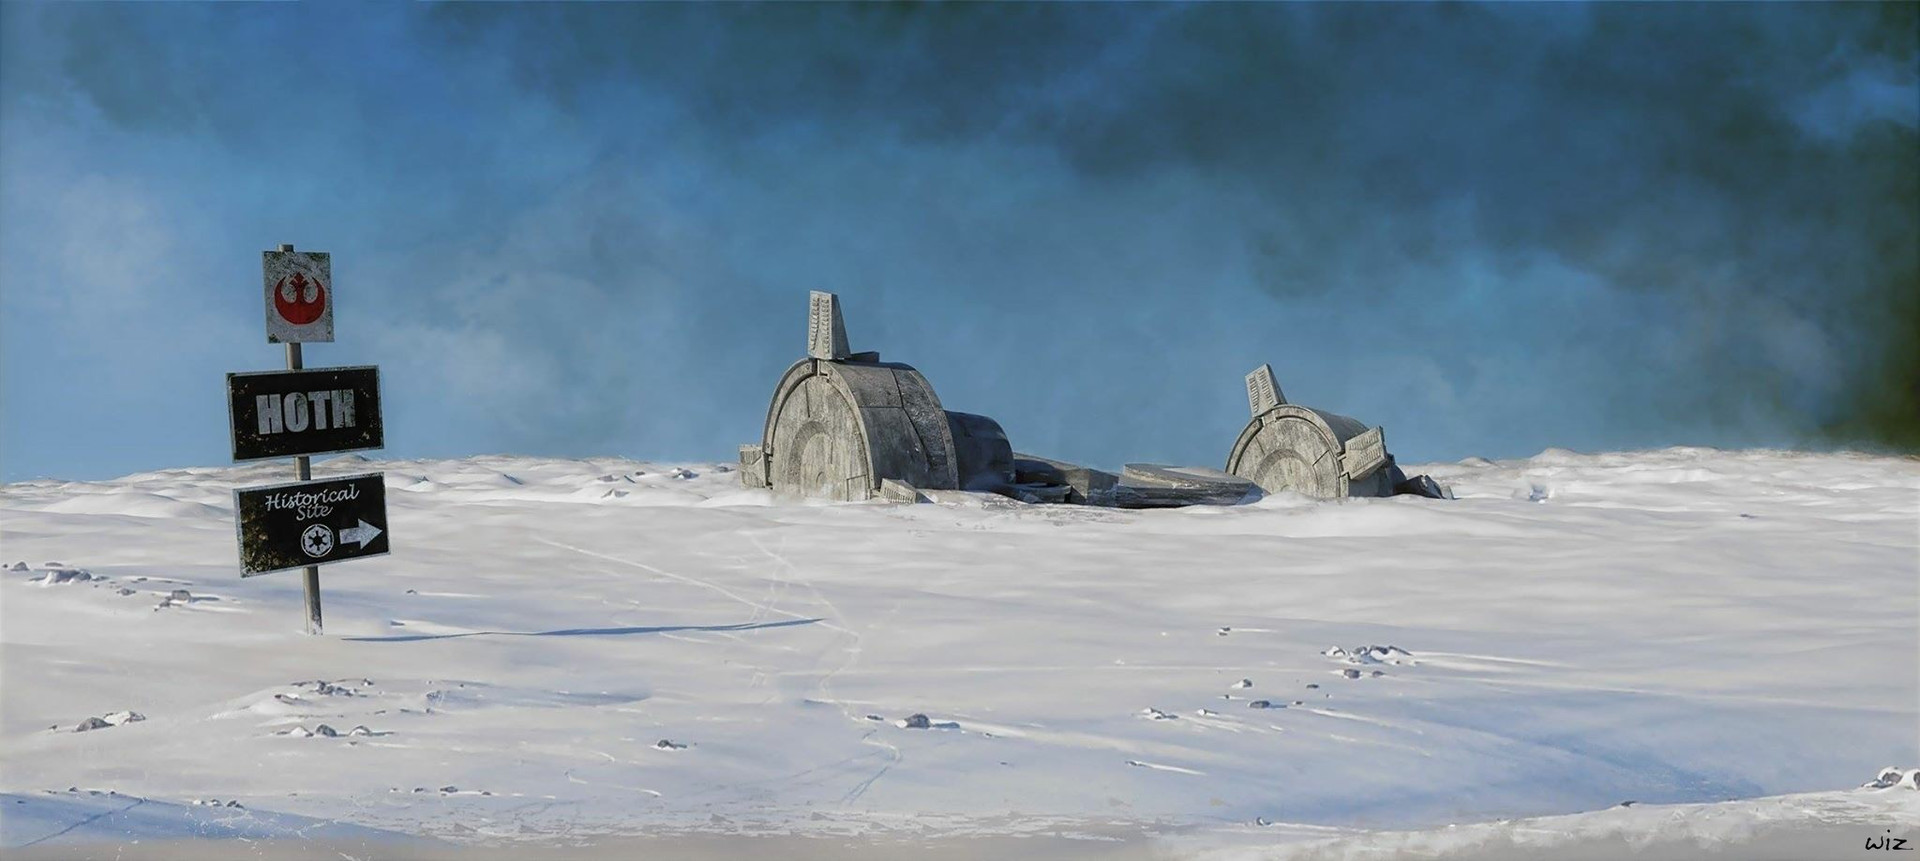 Hoth (aftermath).